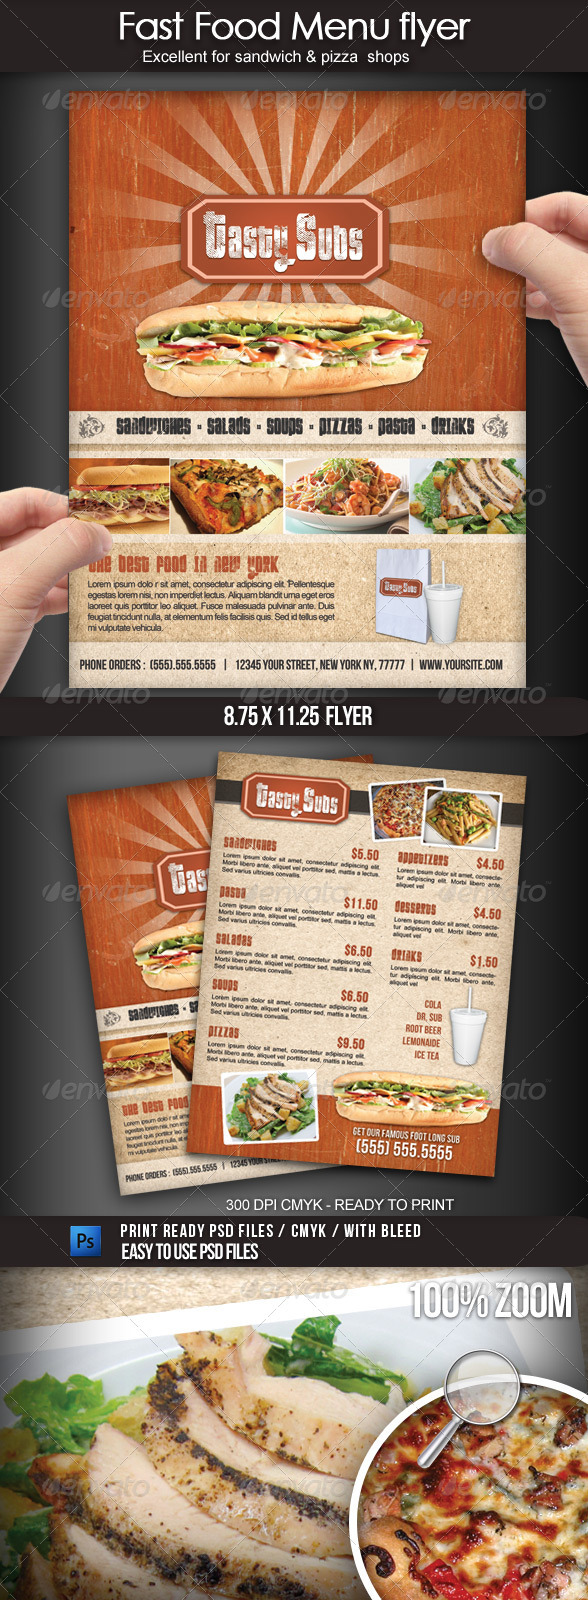 Fast Food Menu Flyer - Food Menus Print Templates